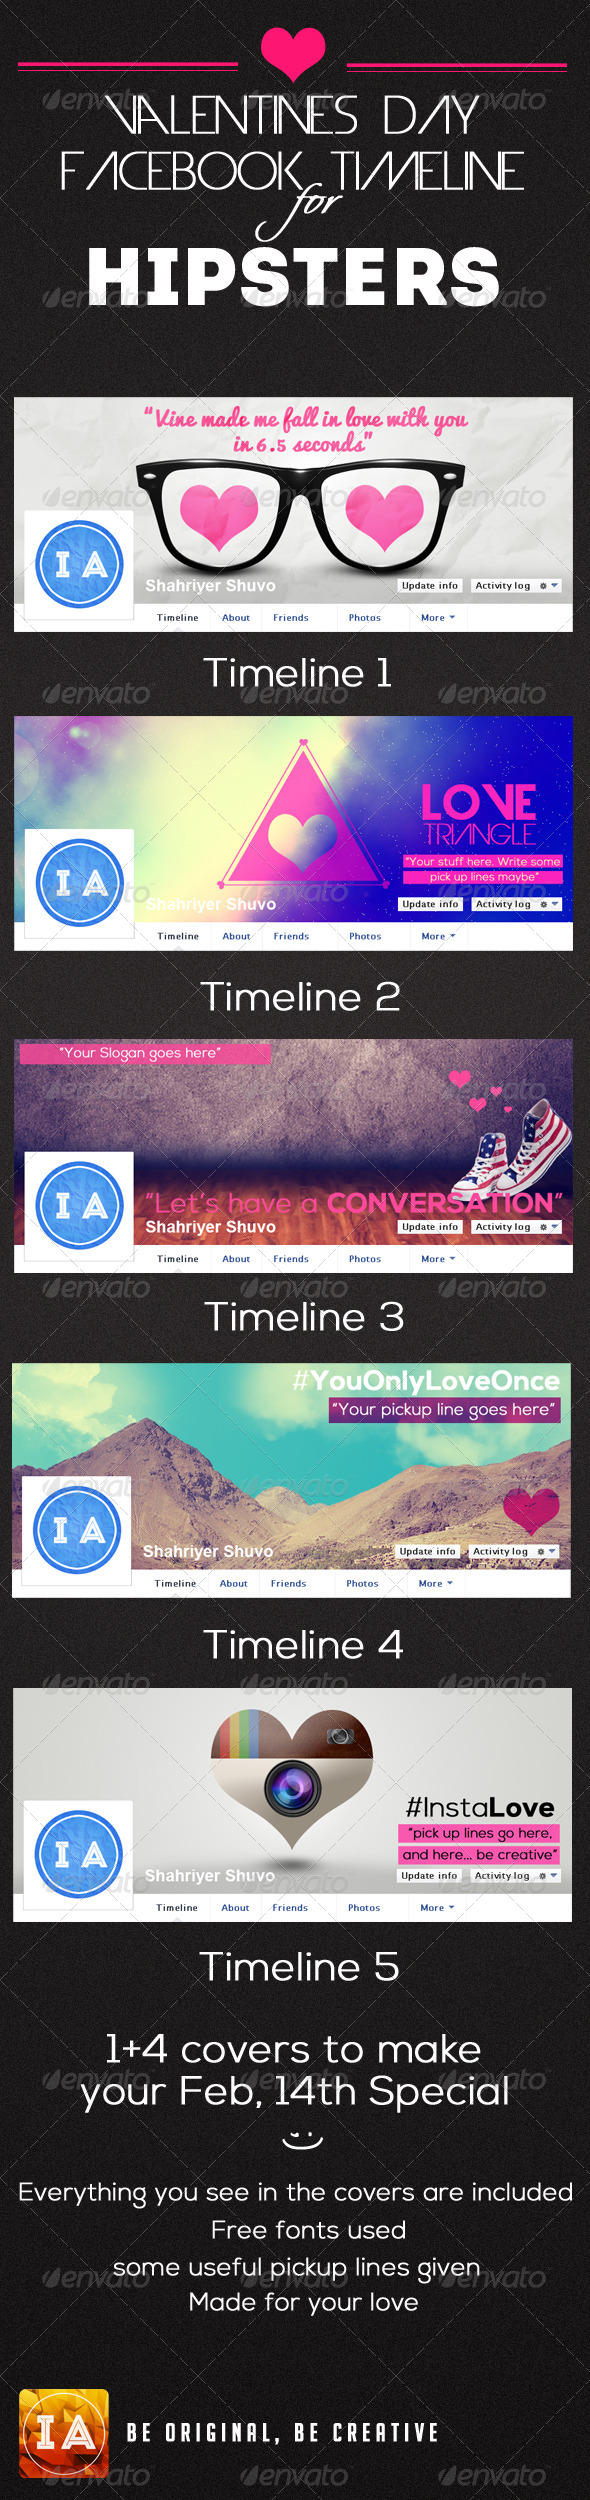 GraphicRiver Valentines Day Hipster Timelines 6614876